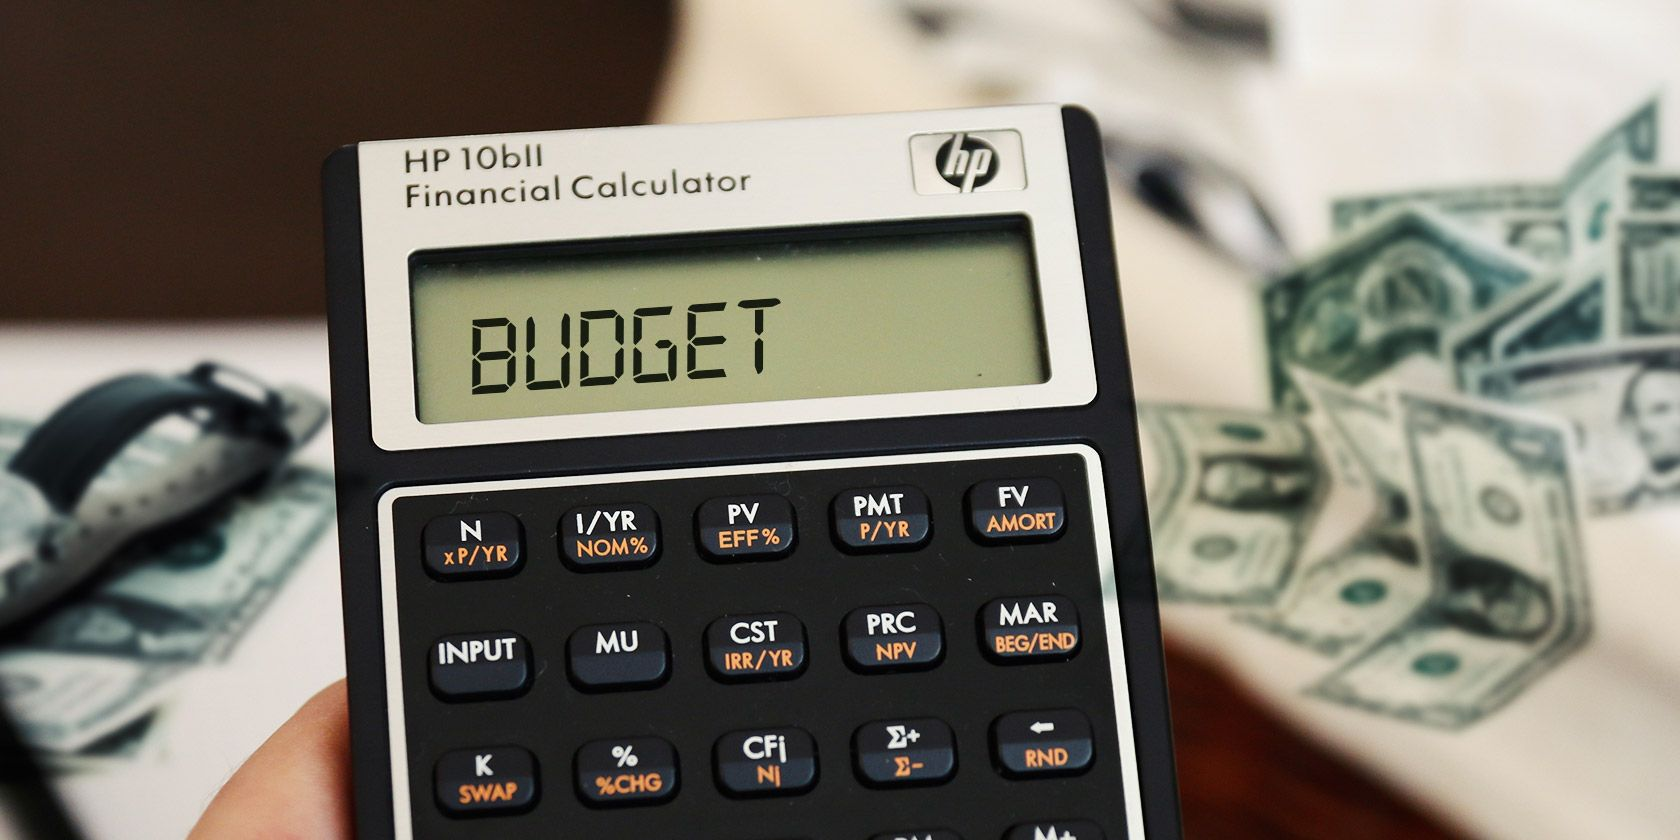 Get Back on Track with These 5 Great Budget Calculators